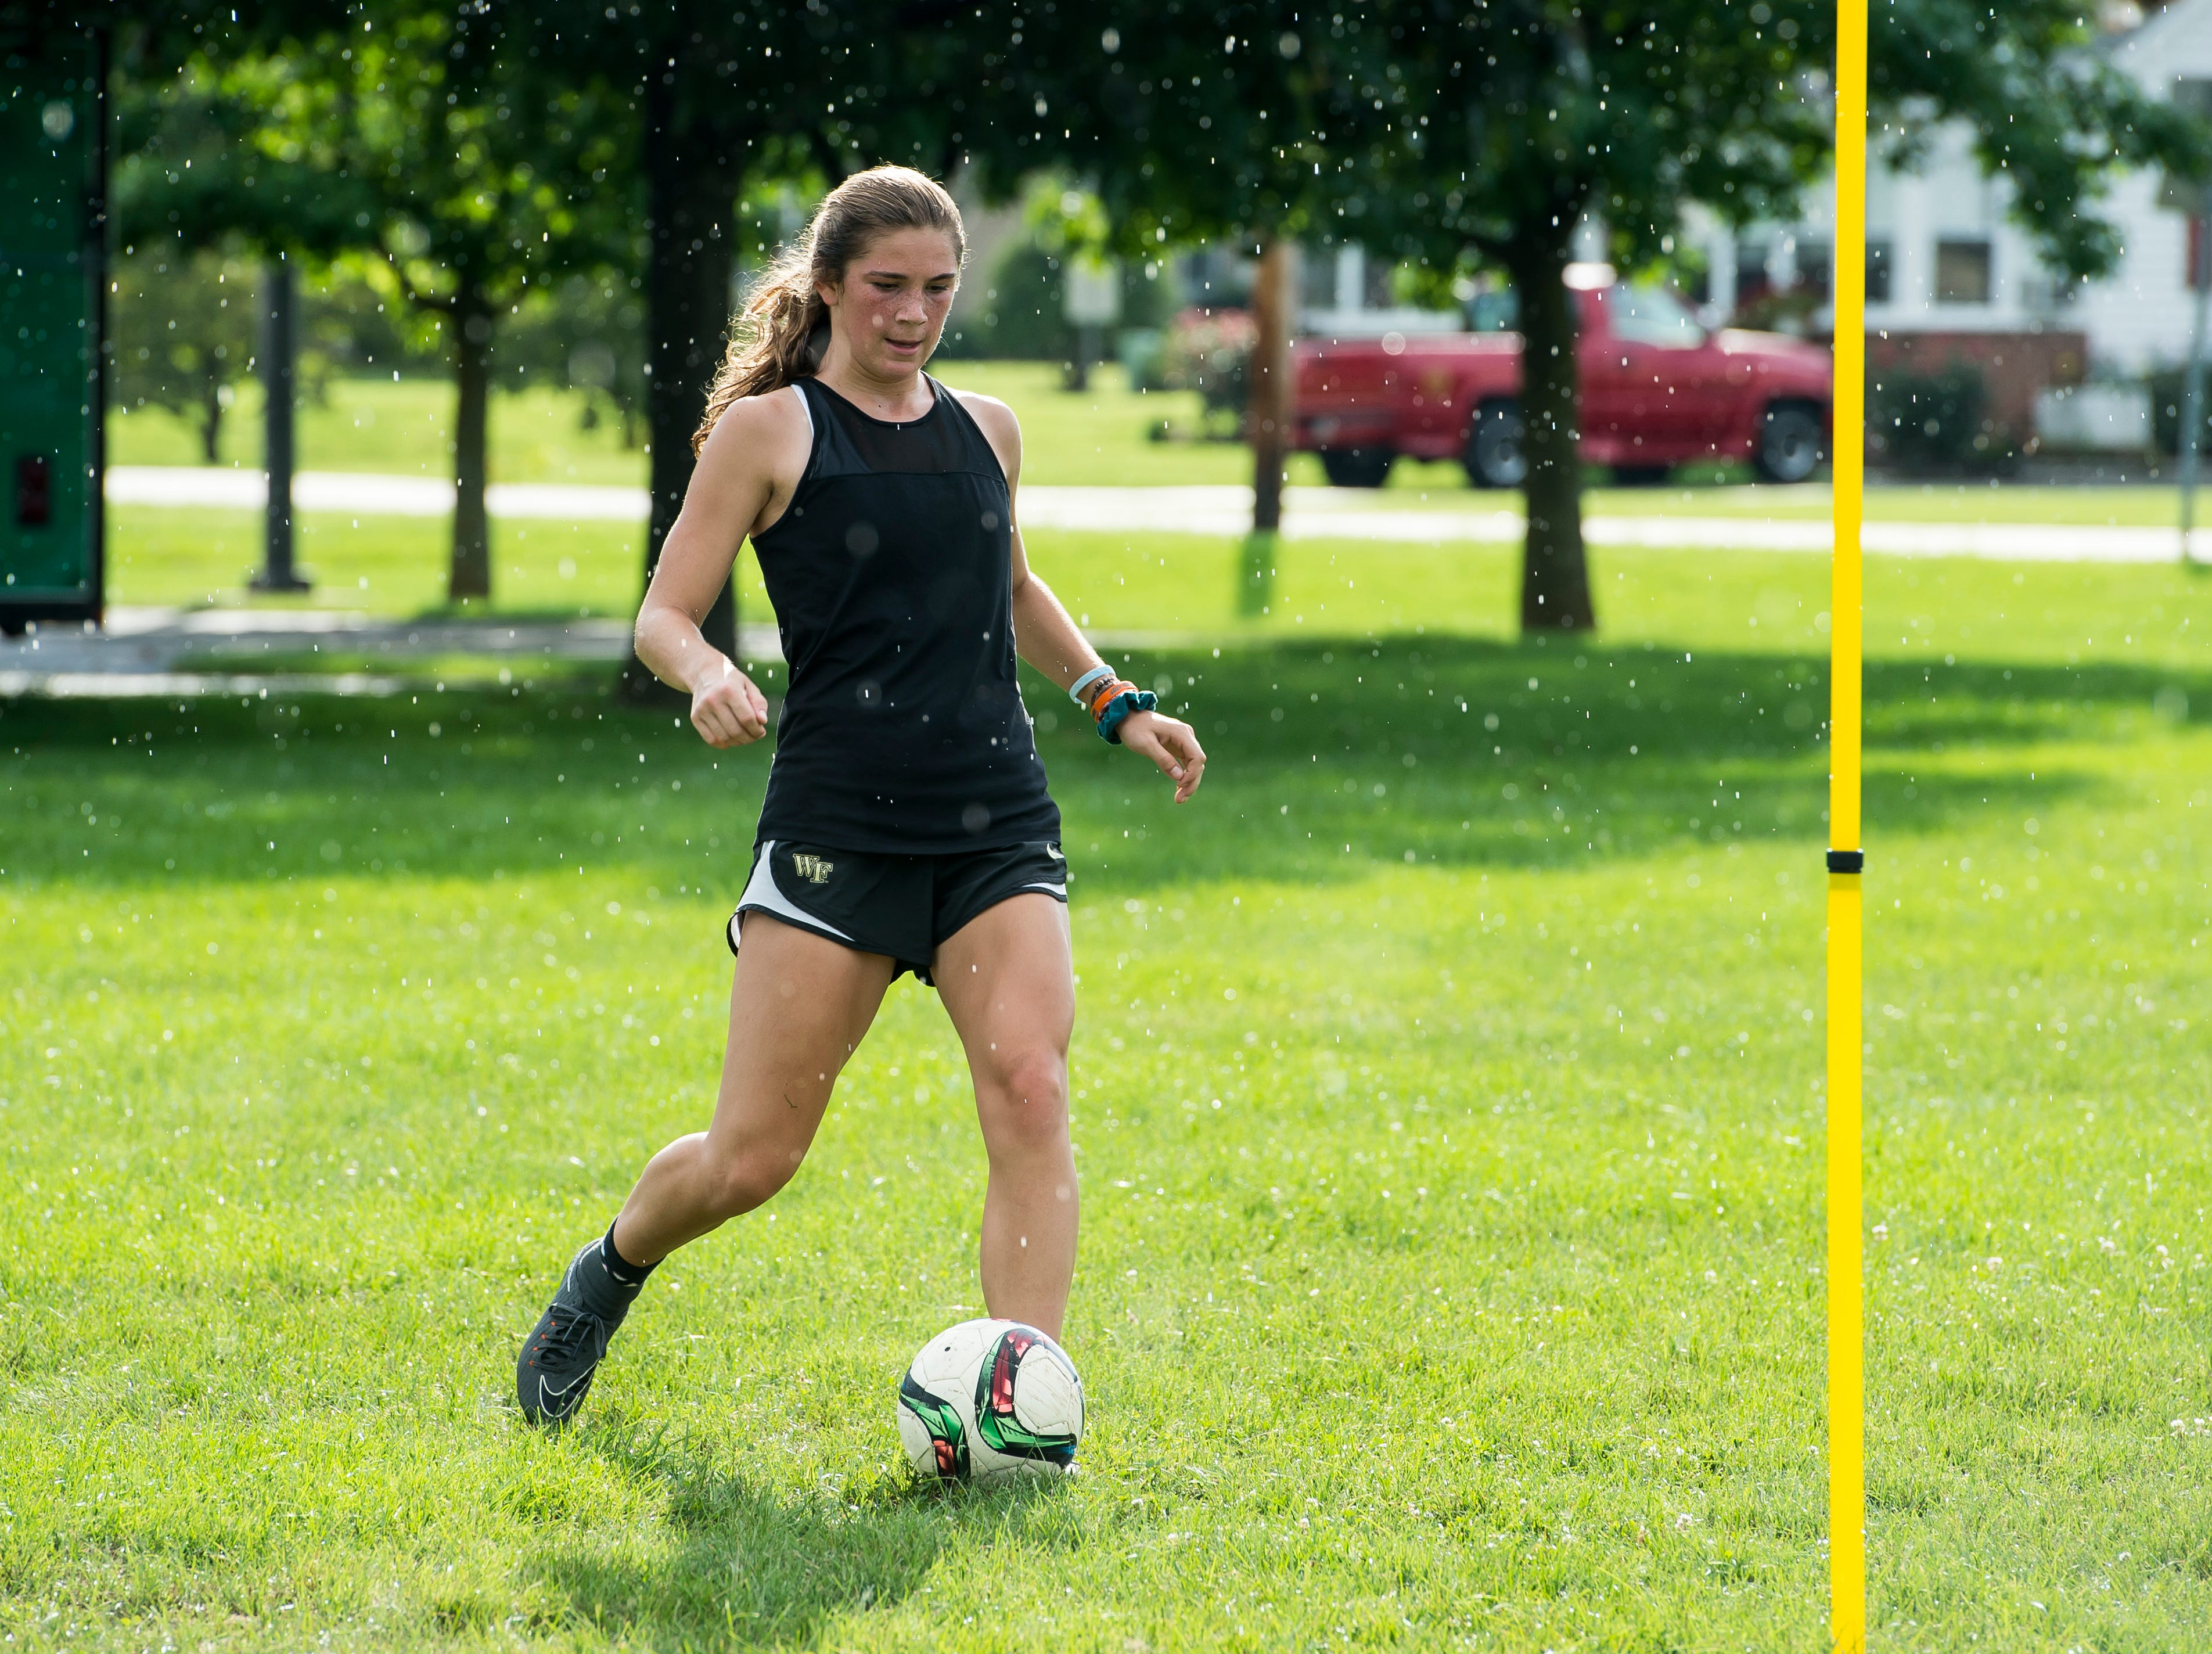 Fairfield junior Milly Heinbaugh works on a drill during the first day of fall sports practice on Monday, August 13, 2018.